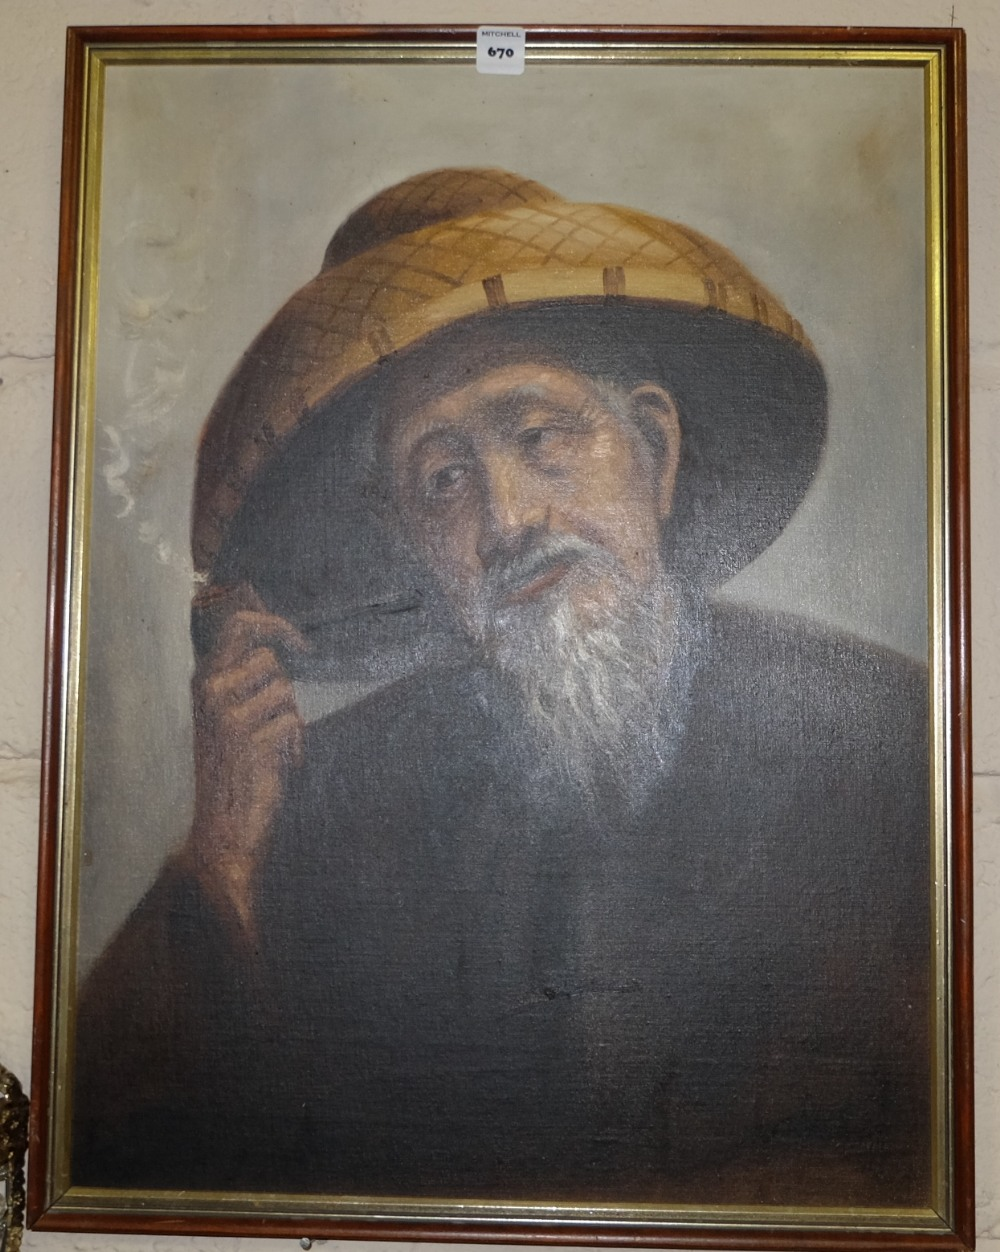 "Lot 670 - Oil on board, portrait of a Japanese man smoking a pipe, 18.5""w x 25""h, signed lower right"